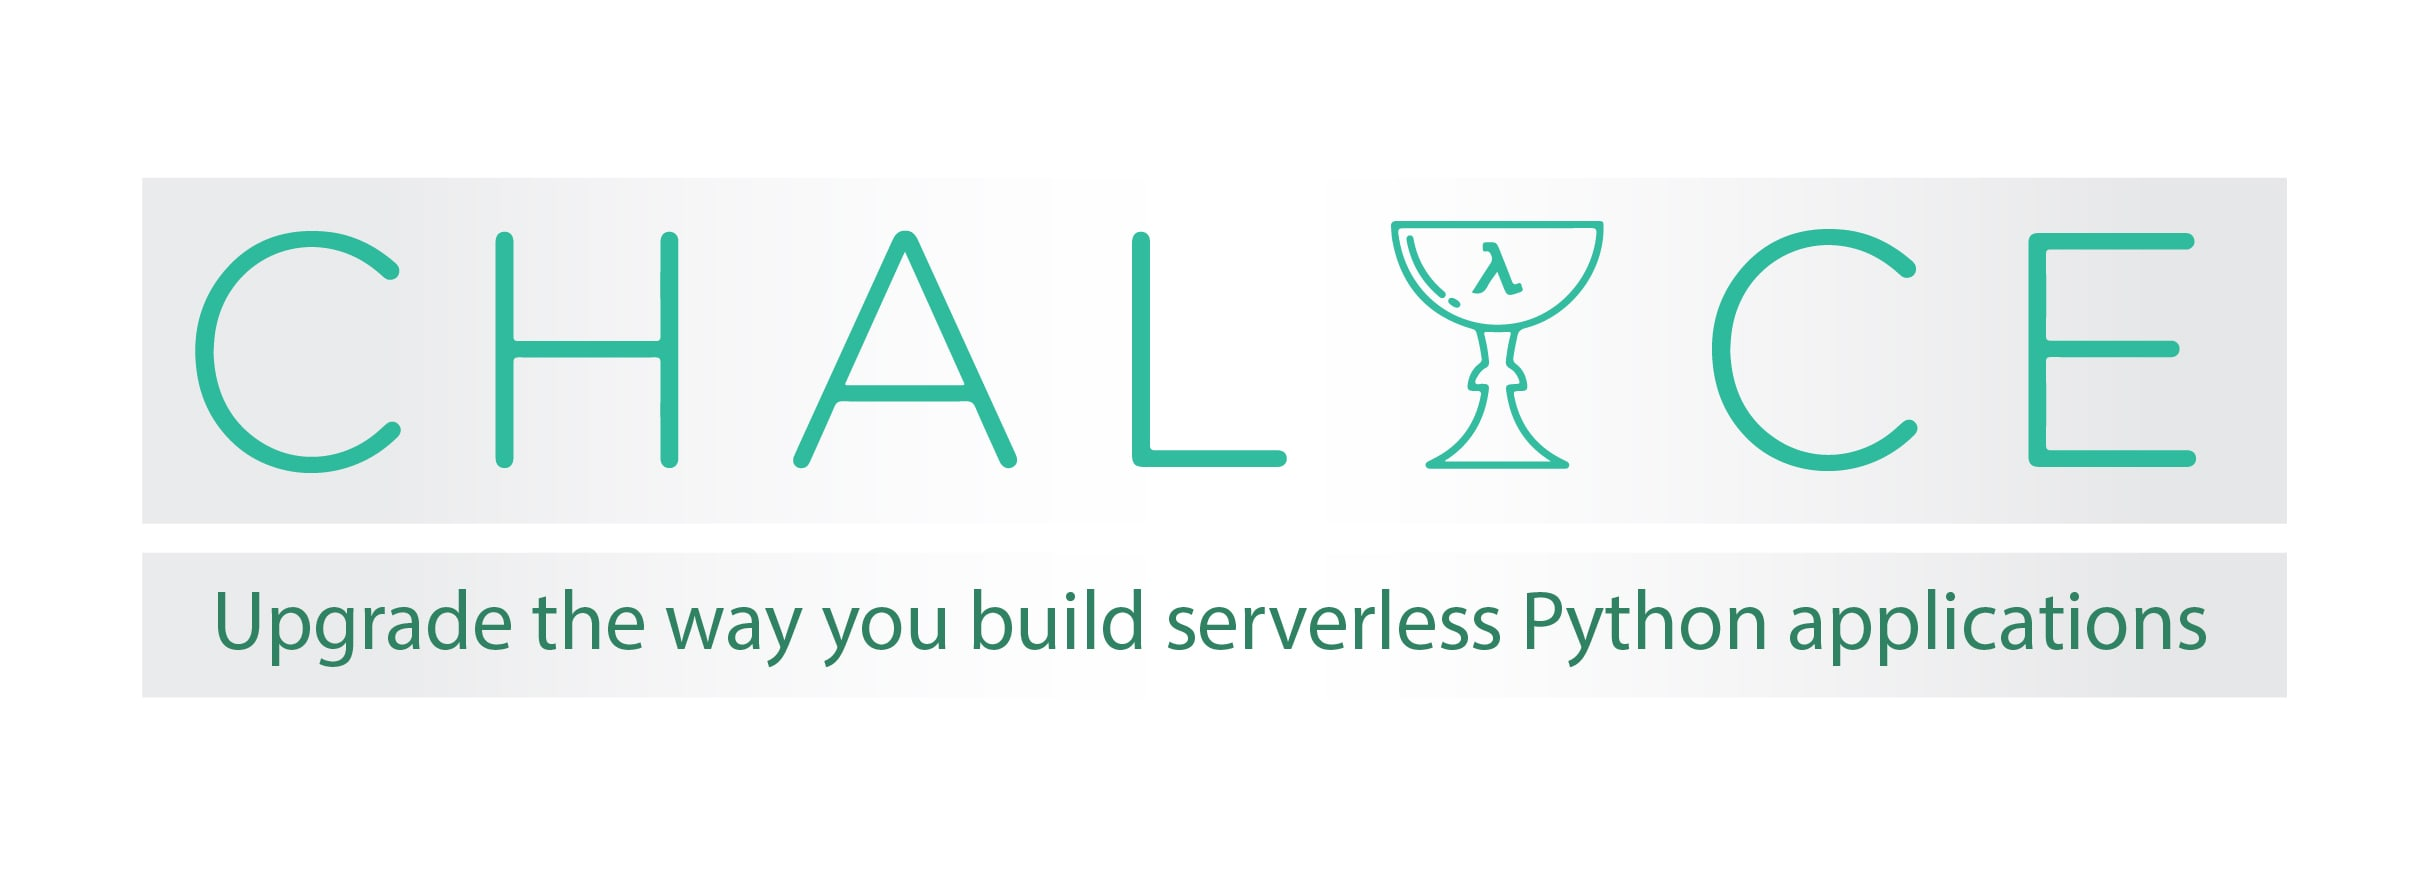 Chalice. Upgrade the way you build serverless Python applications.